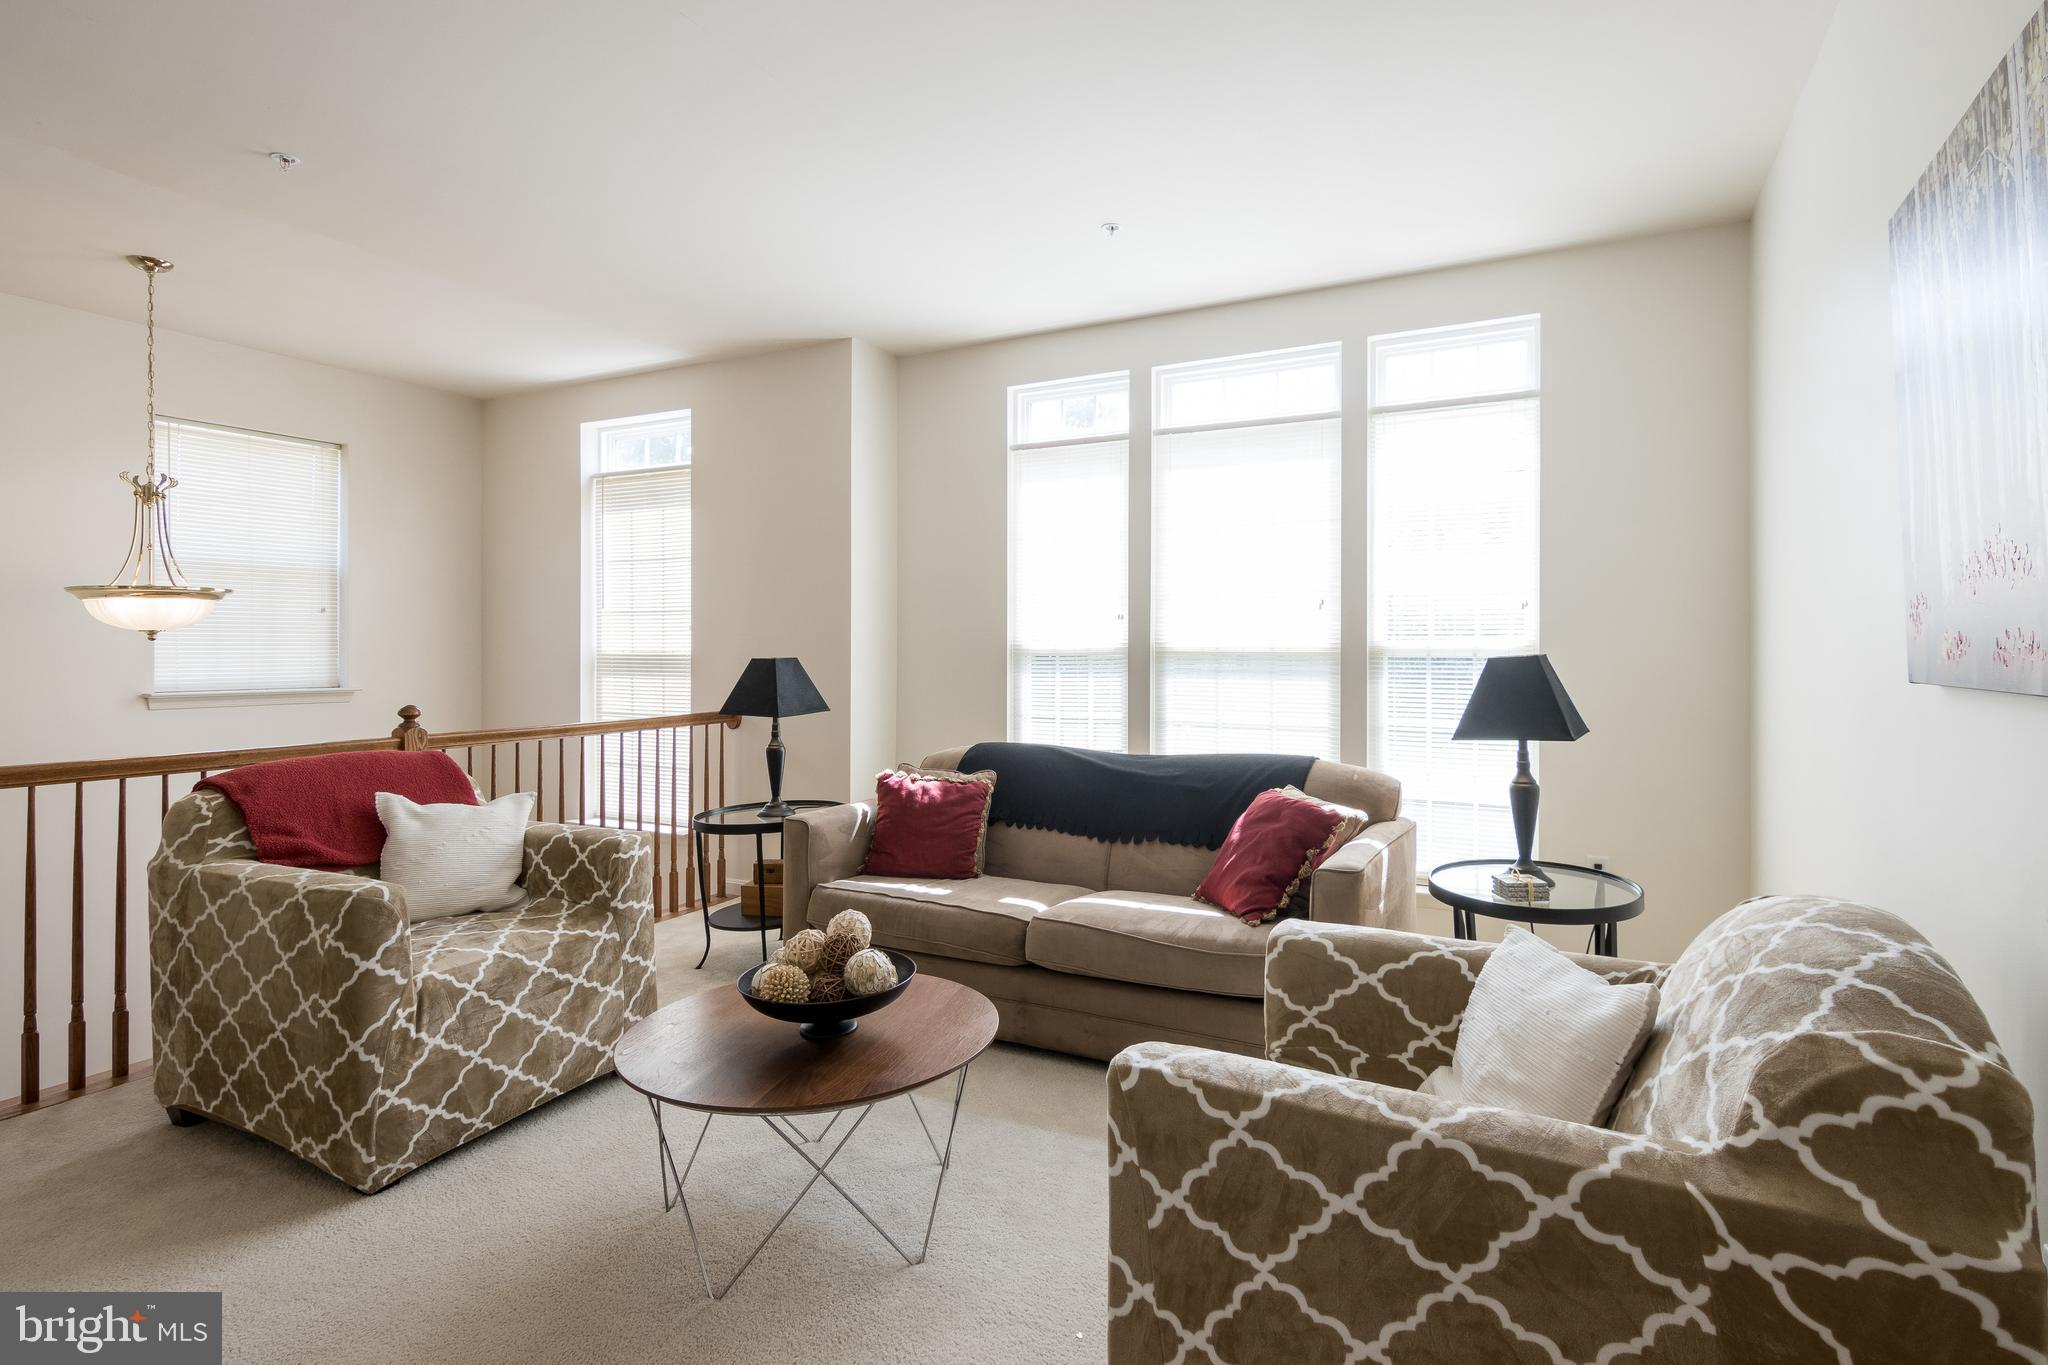 15 years young and this end unit townhome sparkles.  Just freshly painted inside and out.  Tall wind